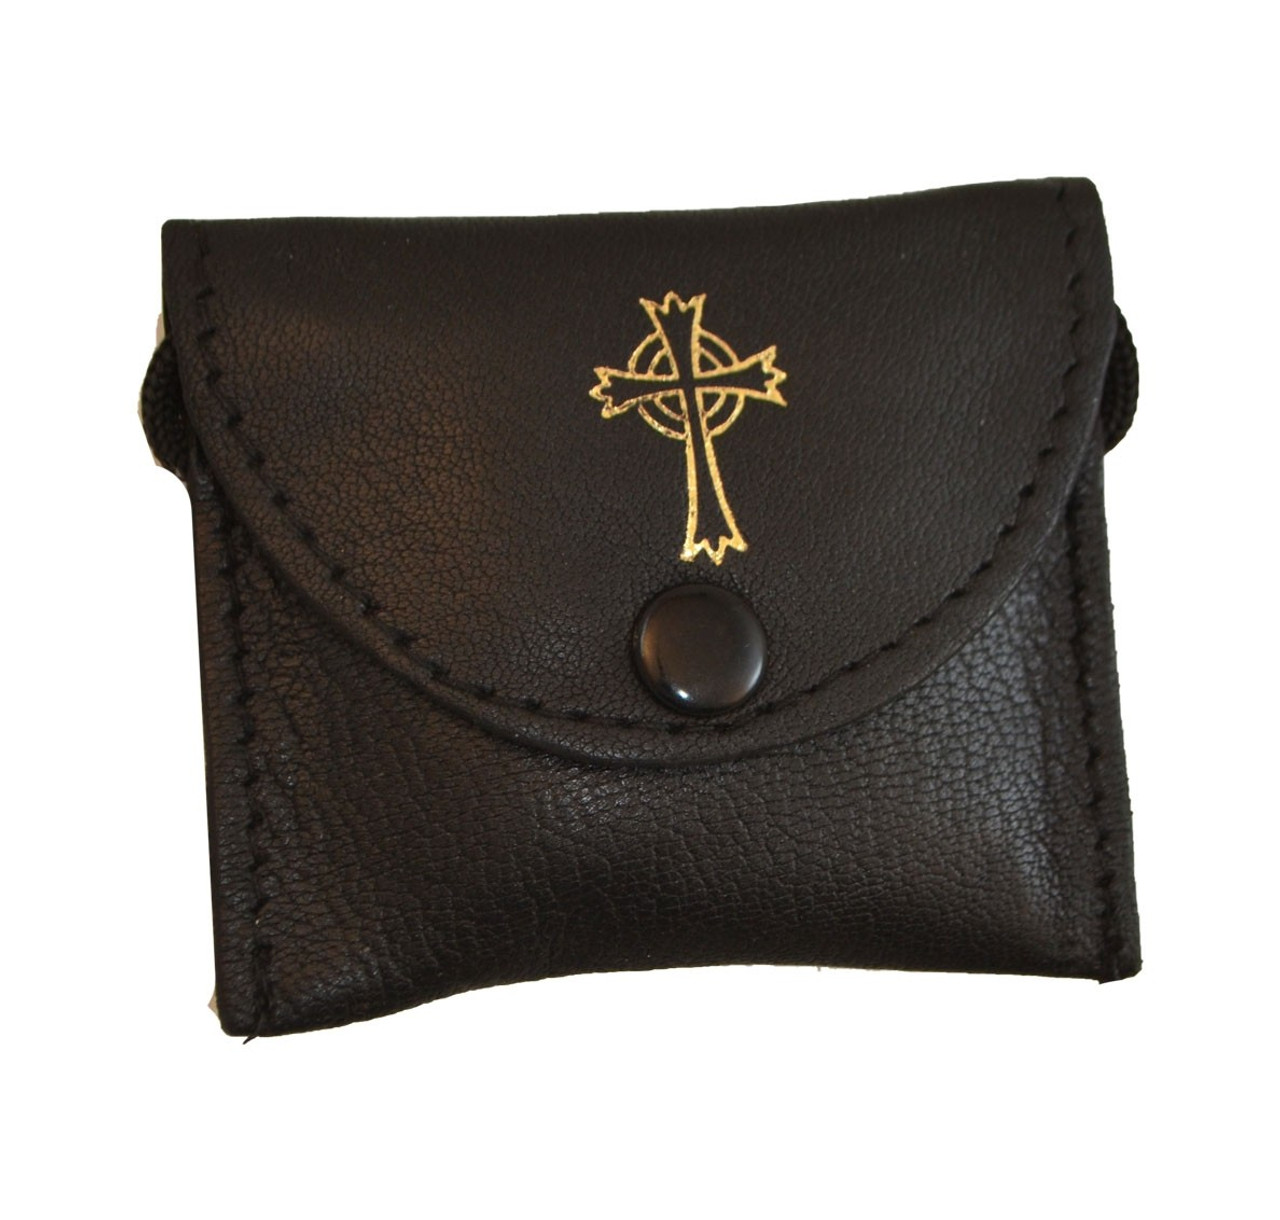 Small Leather Burse with Cross